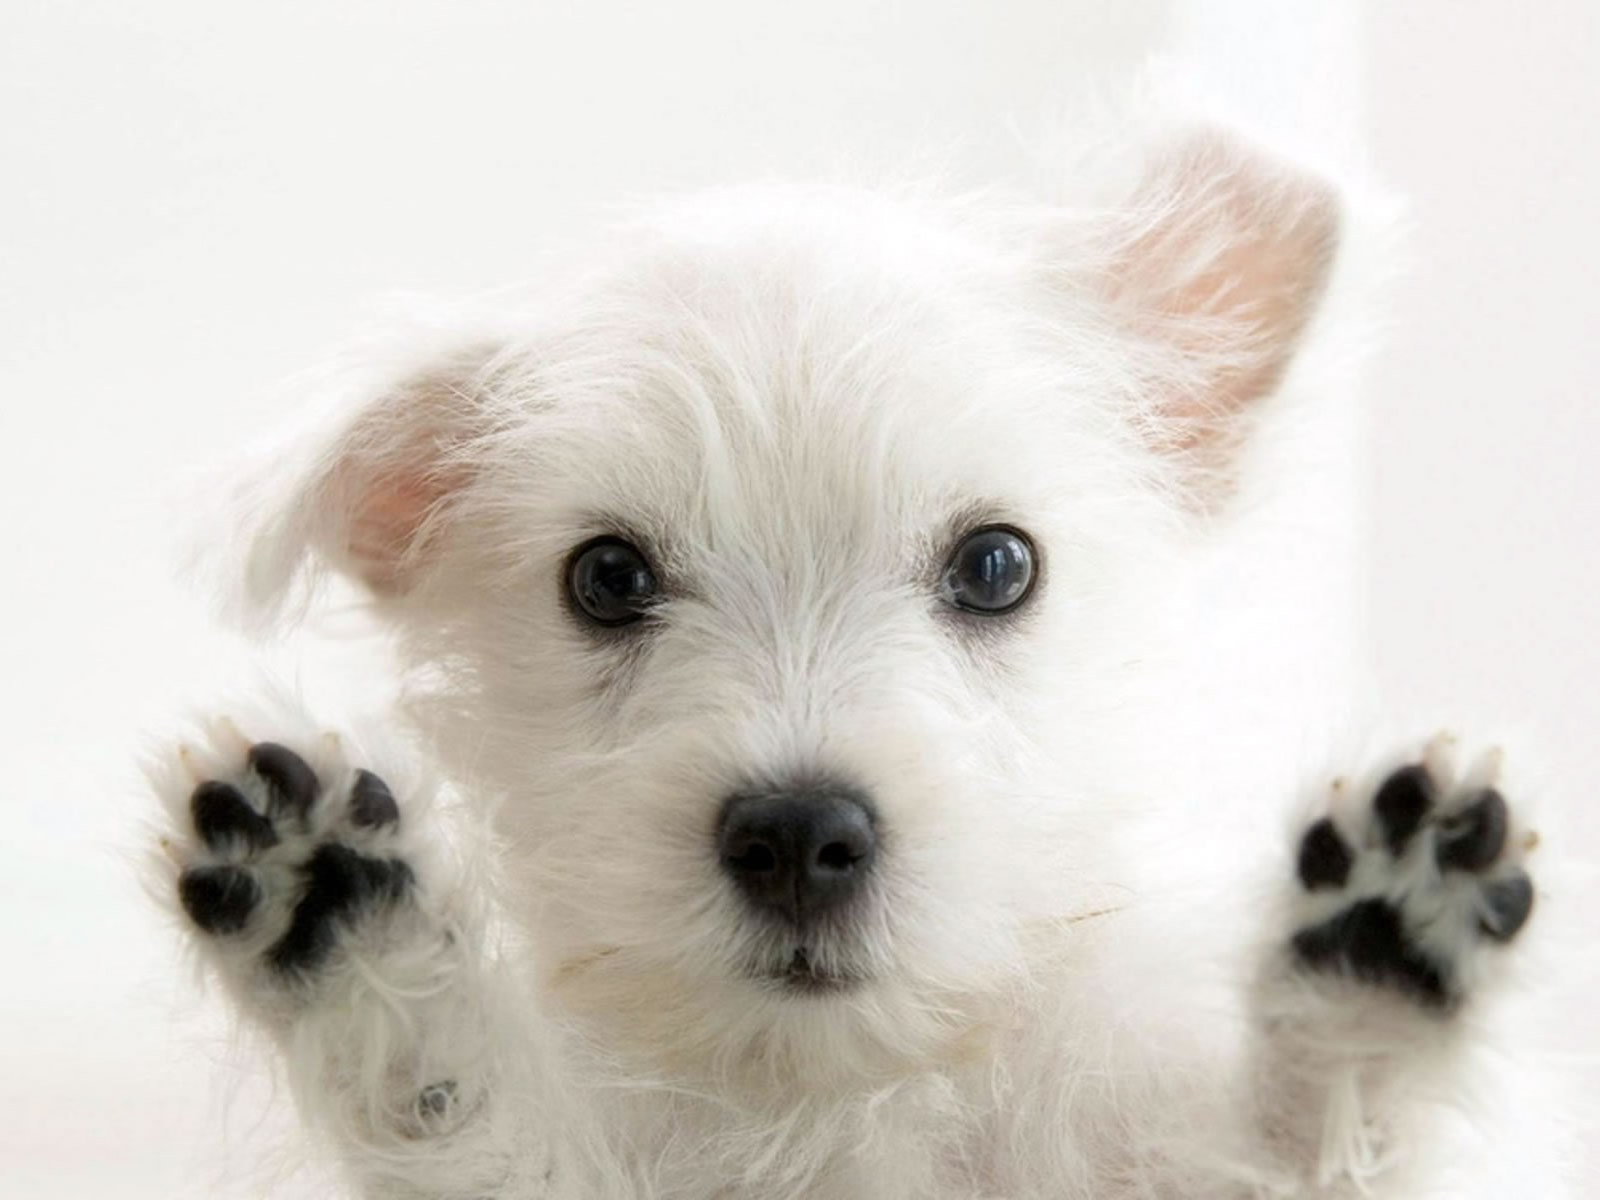 So cute white dog photo wallpaper here you can see so cute white dog